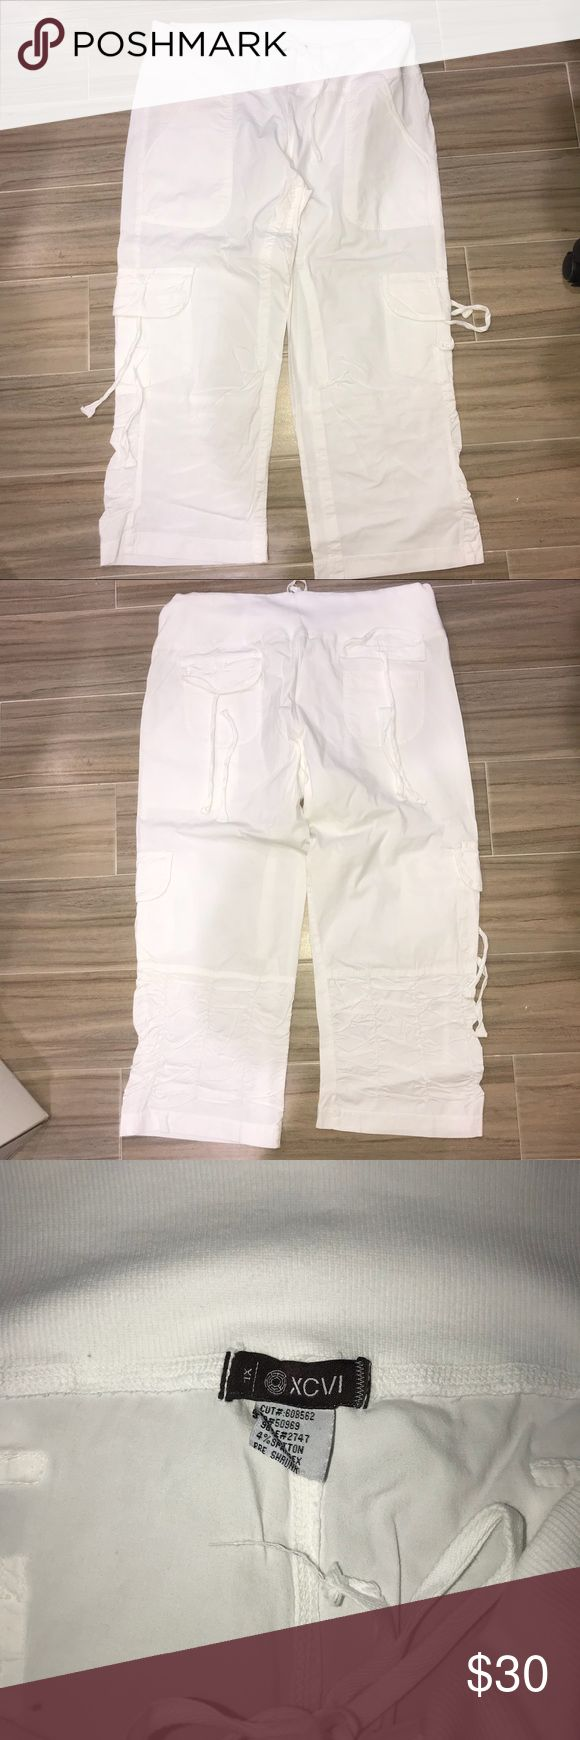 Women's White Cargo Pants Light weight drawstring adorable cropped women's cargo pants! Perfect with flip flops or wedges! XCVI Pants Wide Leg